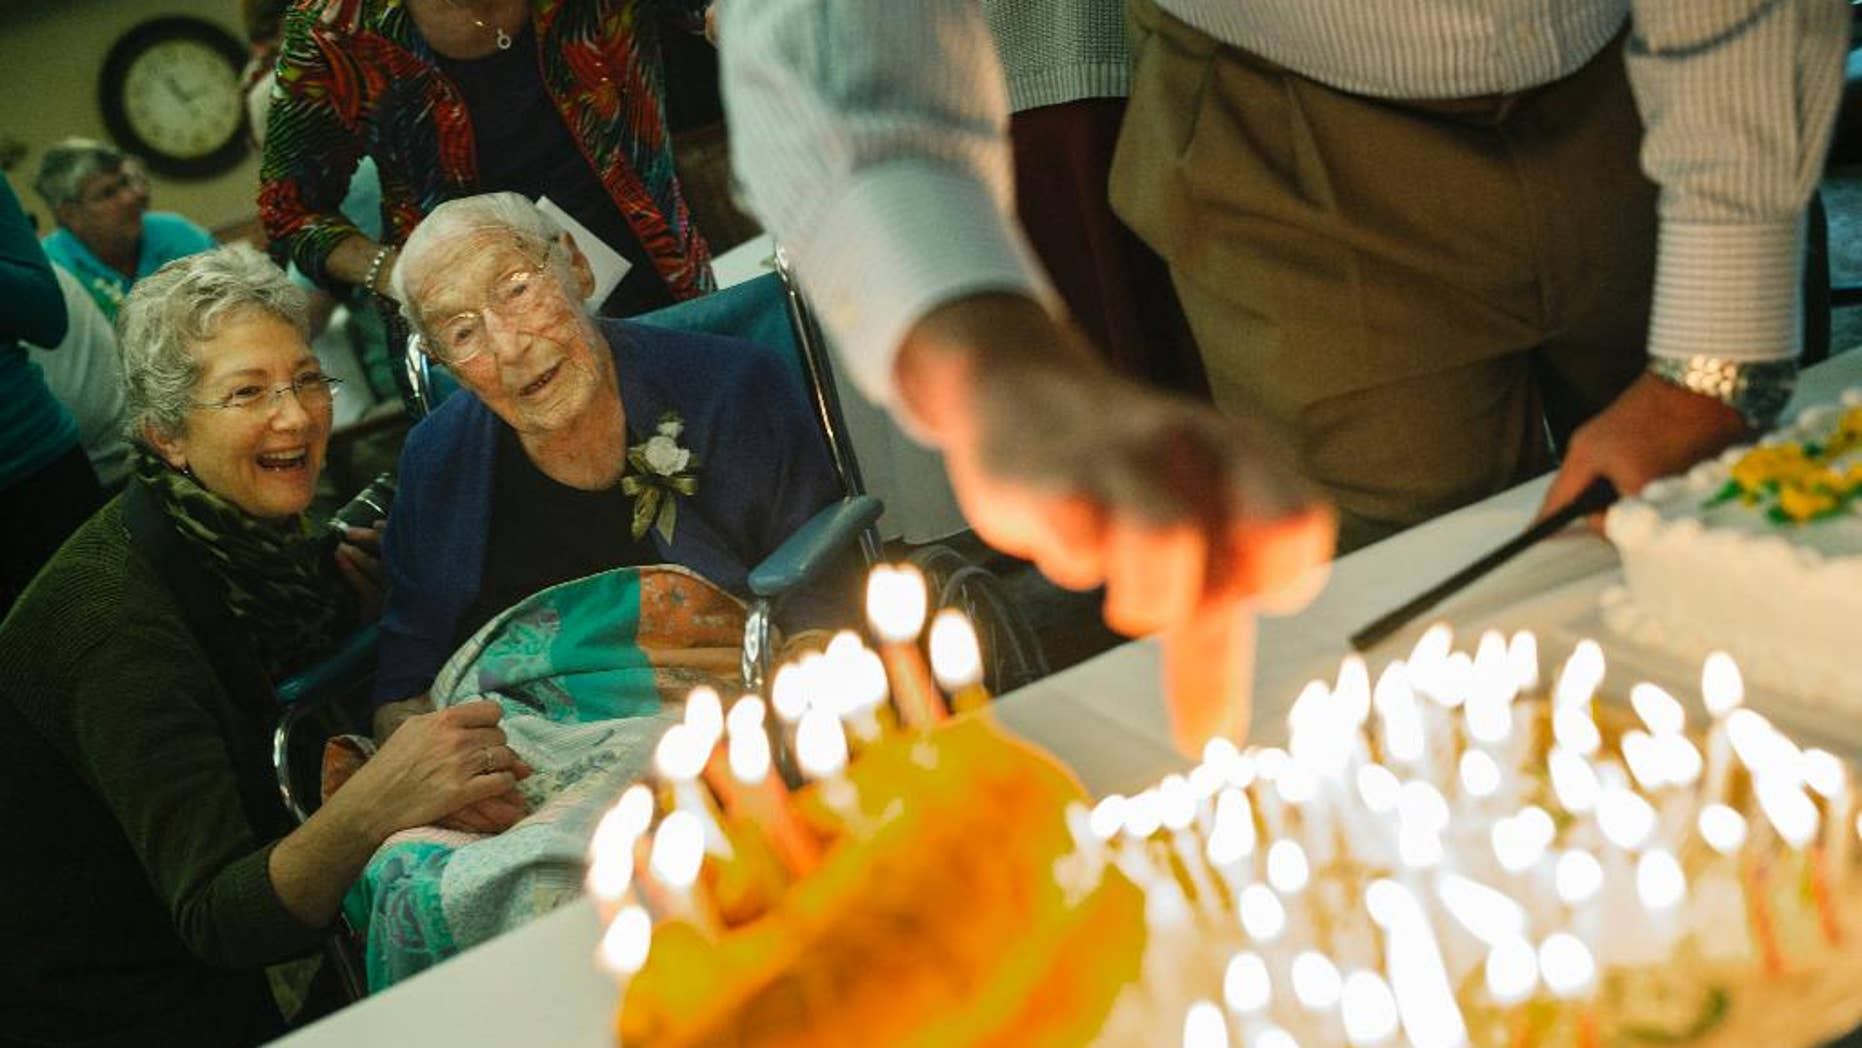 This Oct. 12, 2014 photo shows Anna Stoehr, center, celebrating her 114th birthday at Green Prairie Place senior apartments in Plainview, Minn. Stoehr, one of Minnesota's oldest residents, died Sunday, Dec. 20, 2014 in her sleep after several days in hospice care, according to her son, Harlan Stoehr. (AP Photo/The Star Tribune, Richard Tsong-Taatarii) ST. PAUL PIONEER PRESS OUT, MINNEAPOLIS-AREA TV OUT, MAGS OUT